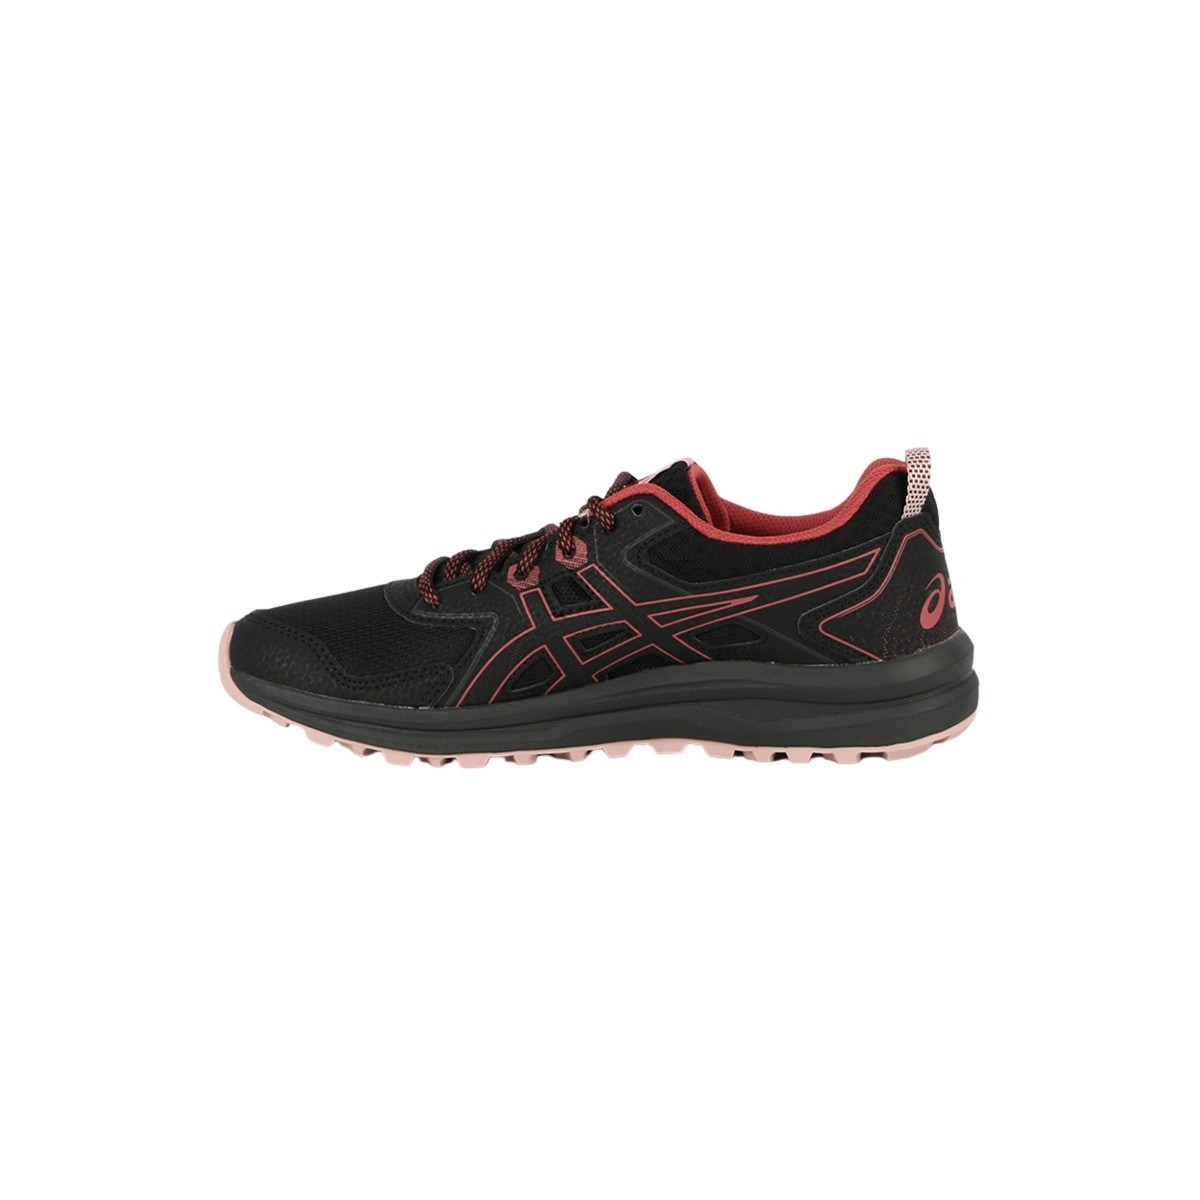 Asics Zapatilla Trail Scout Black Dried Rose Negro Rosa Mujer